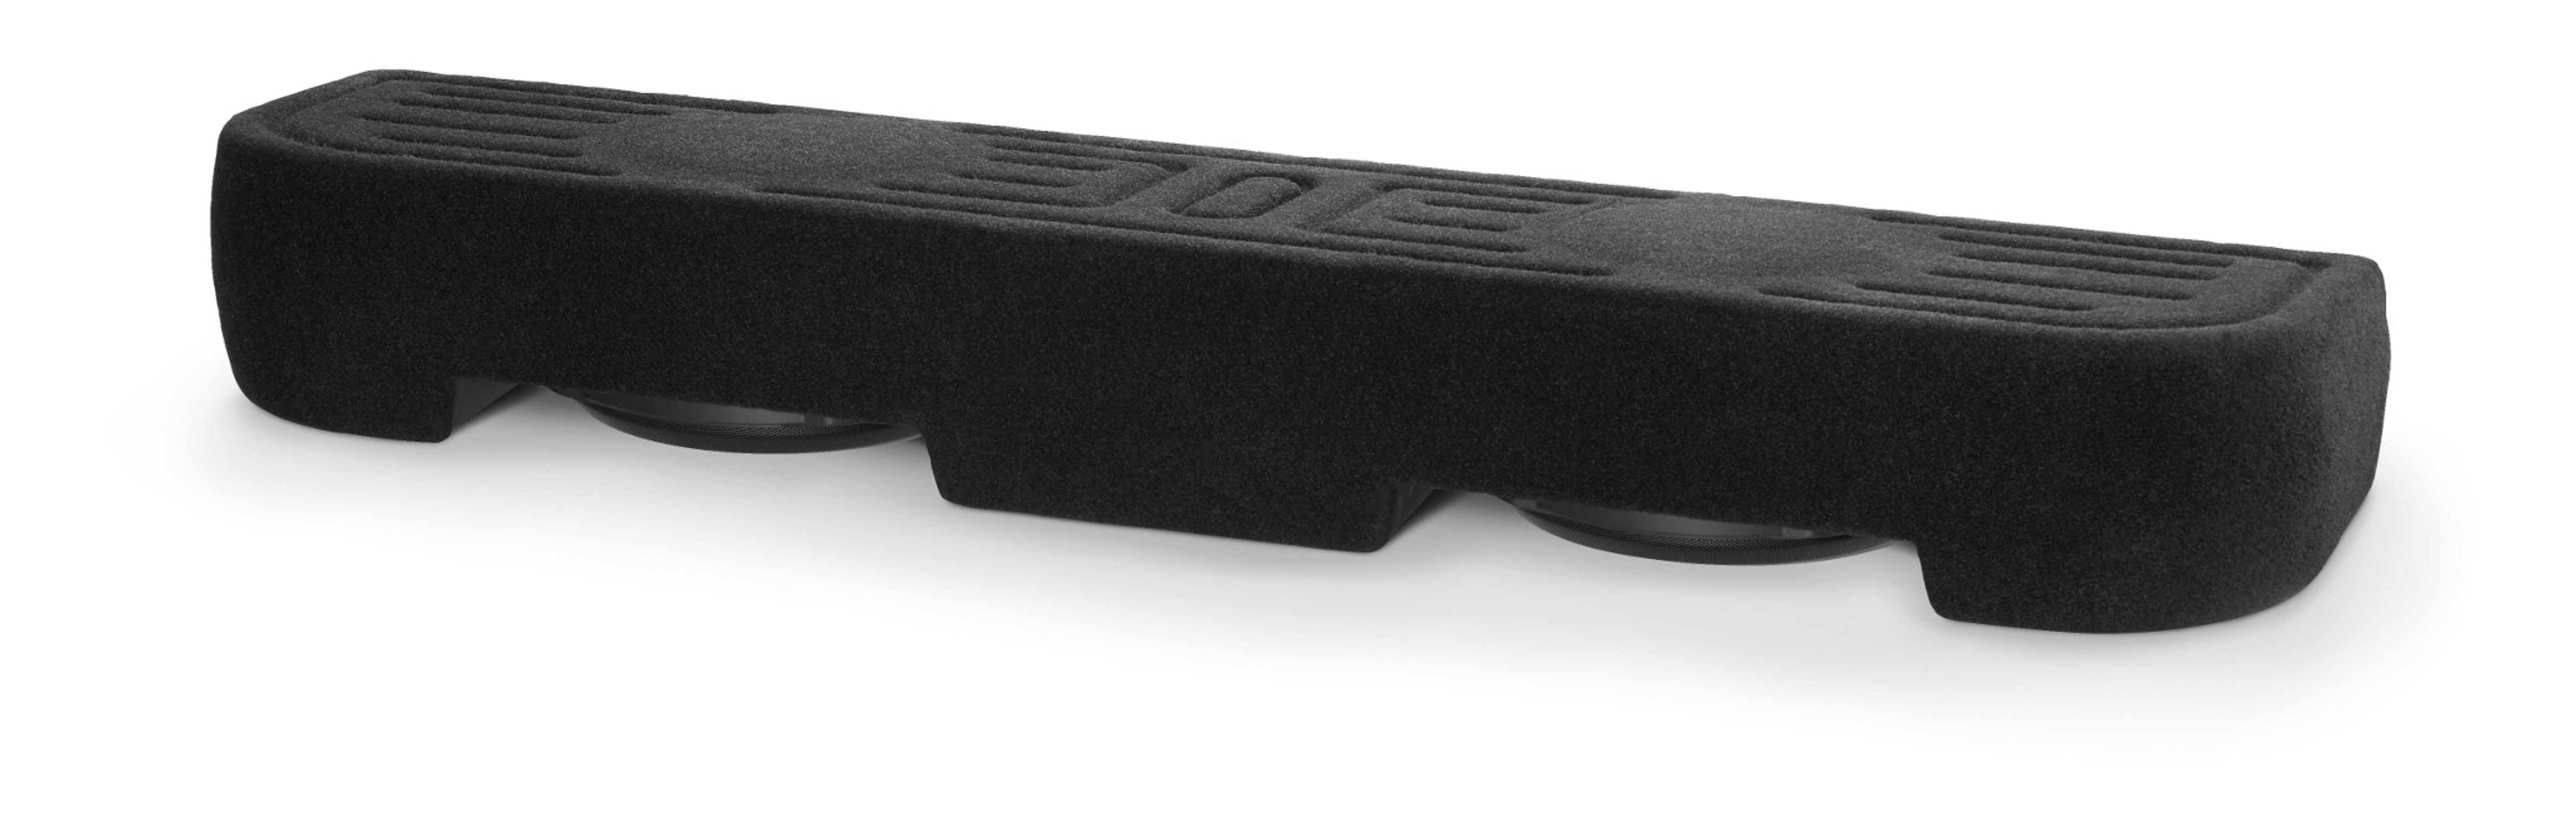 SB-F-150-SCDBL-12TW3 Stealthbox